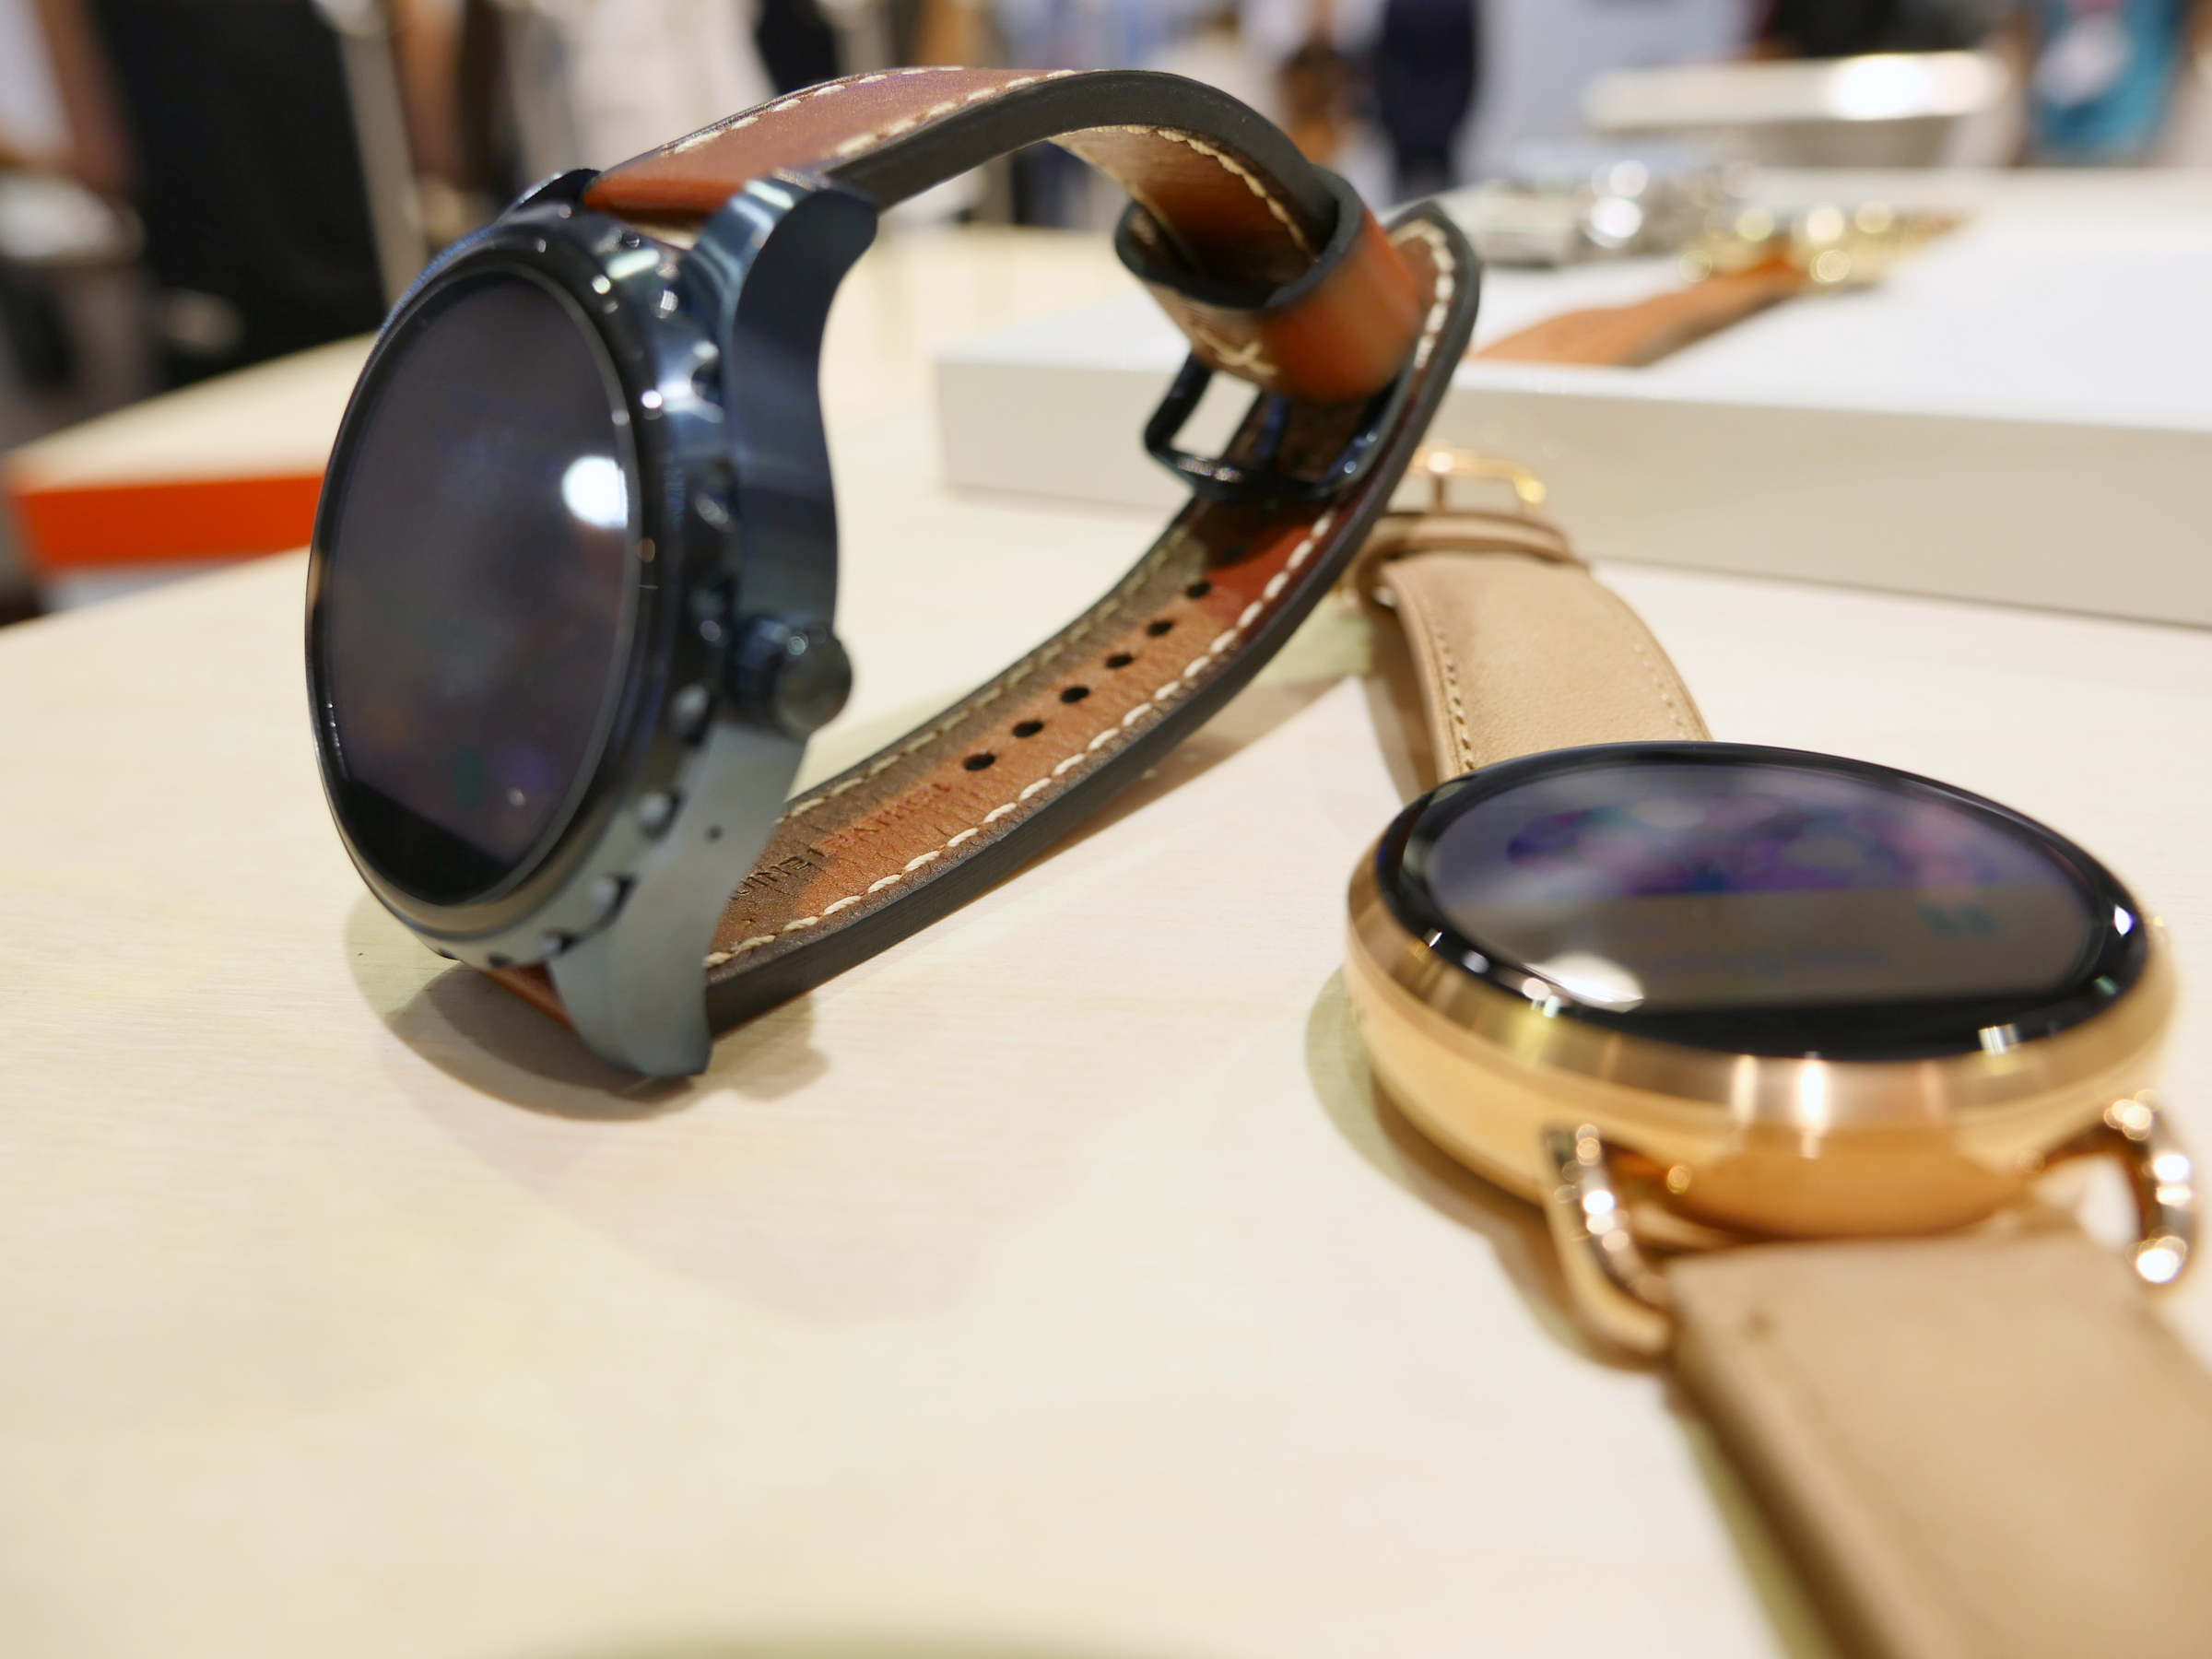 Hands On Fossil Q Marshal And Wander Android Wear Smartwatches 6